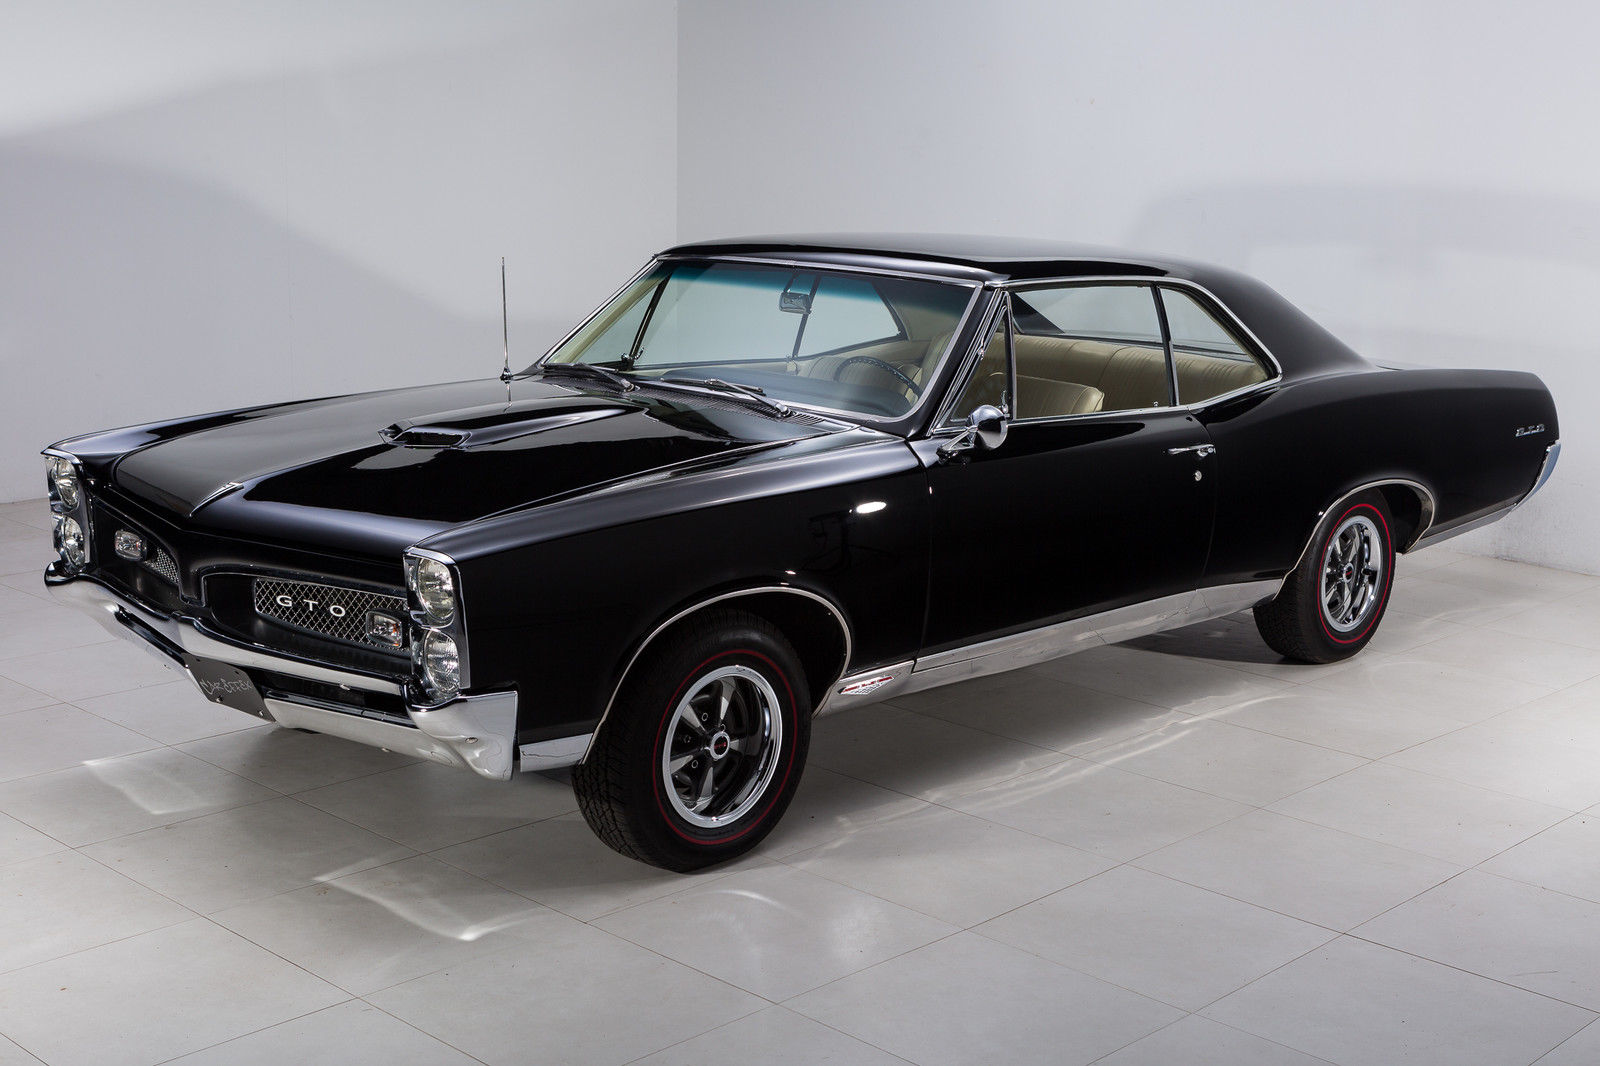 Chevy For Sale All New Car Release And Reviews 1960 Impala Engine Wiring Schematics 1967 Pontiac Gto Project Cars